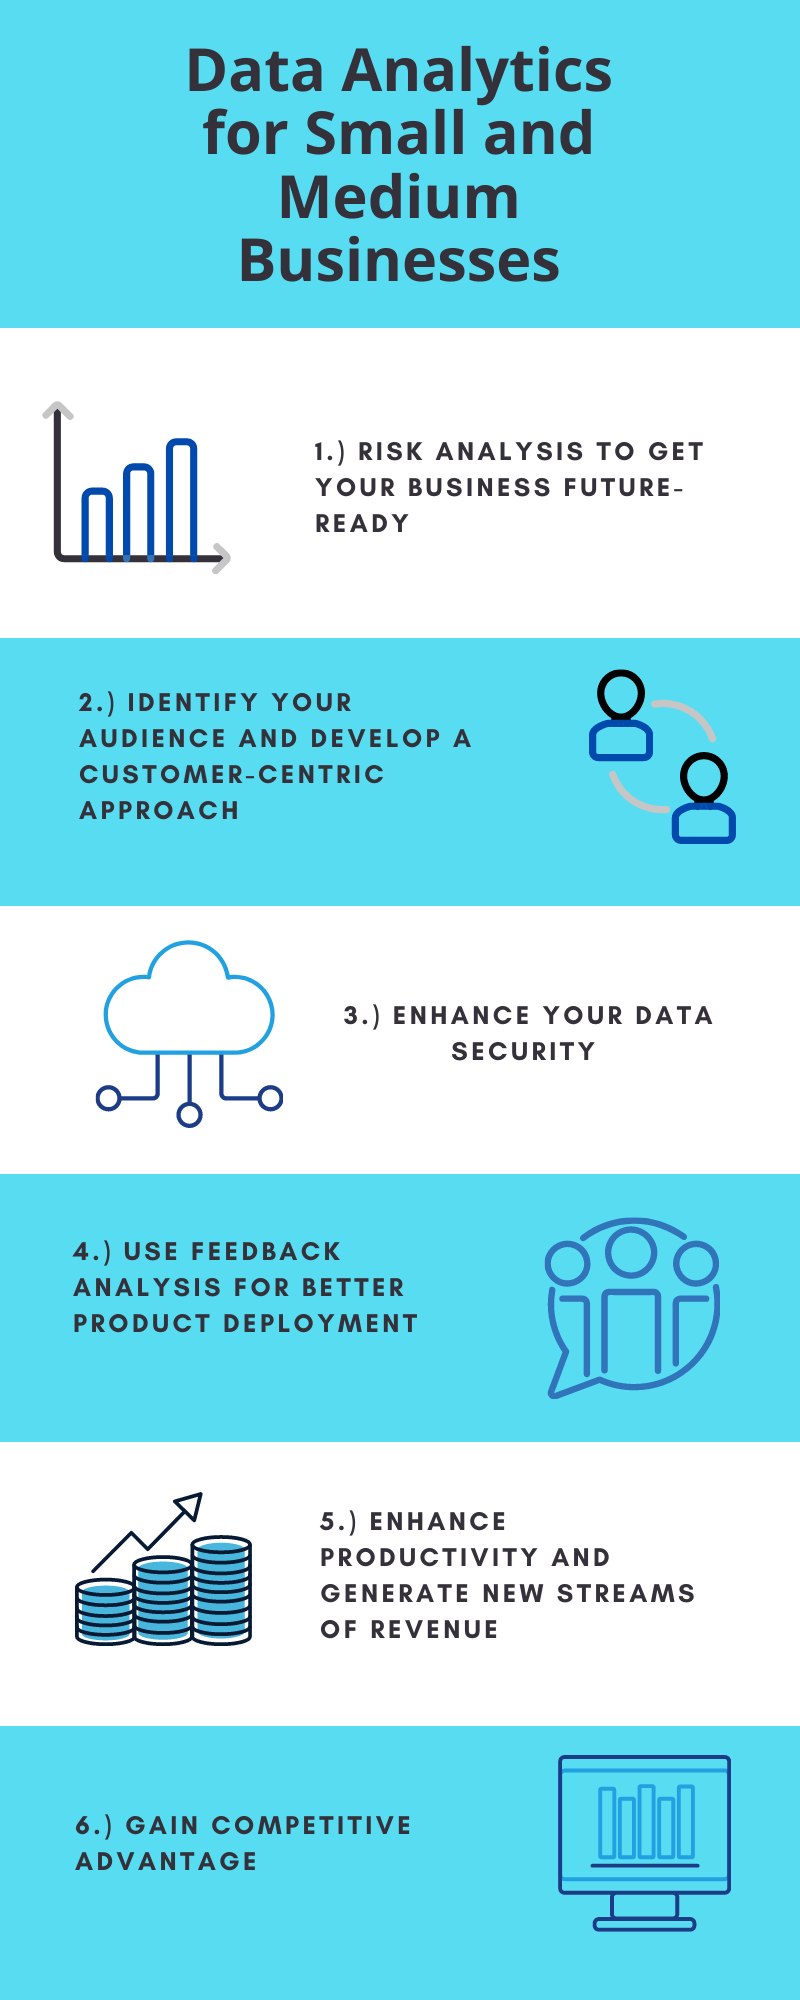 Benefits of data analytics for Small and Medium Businesses